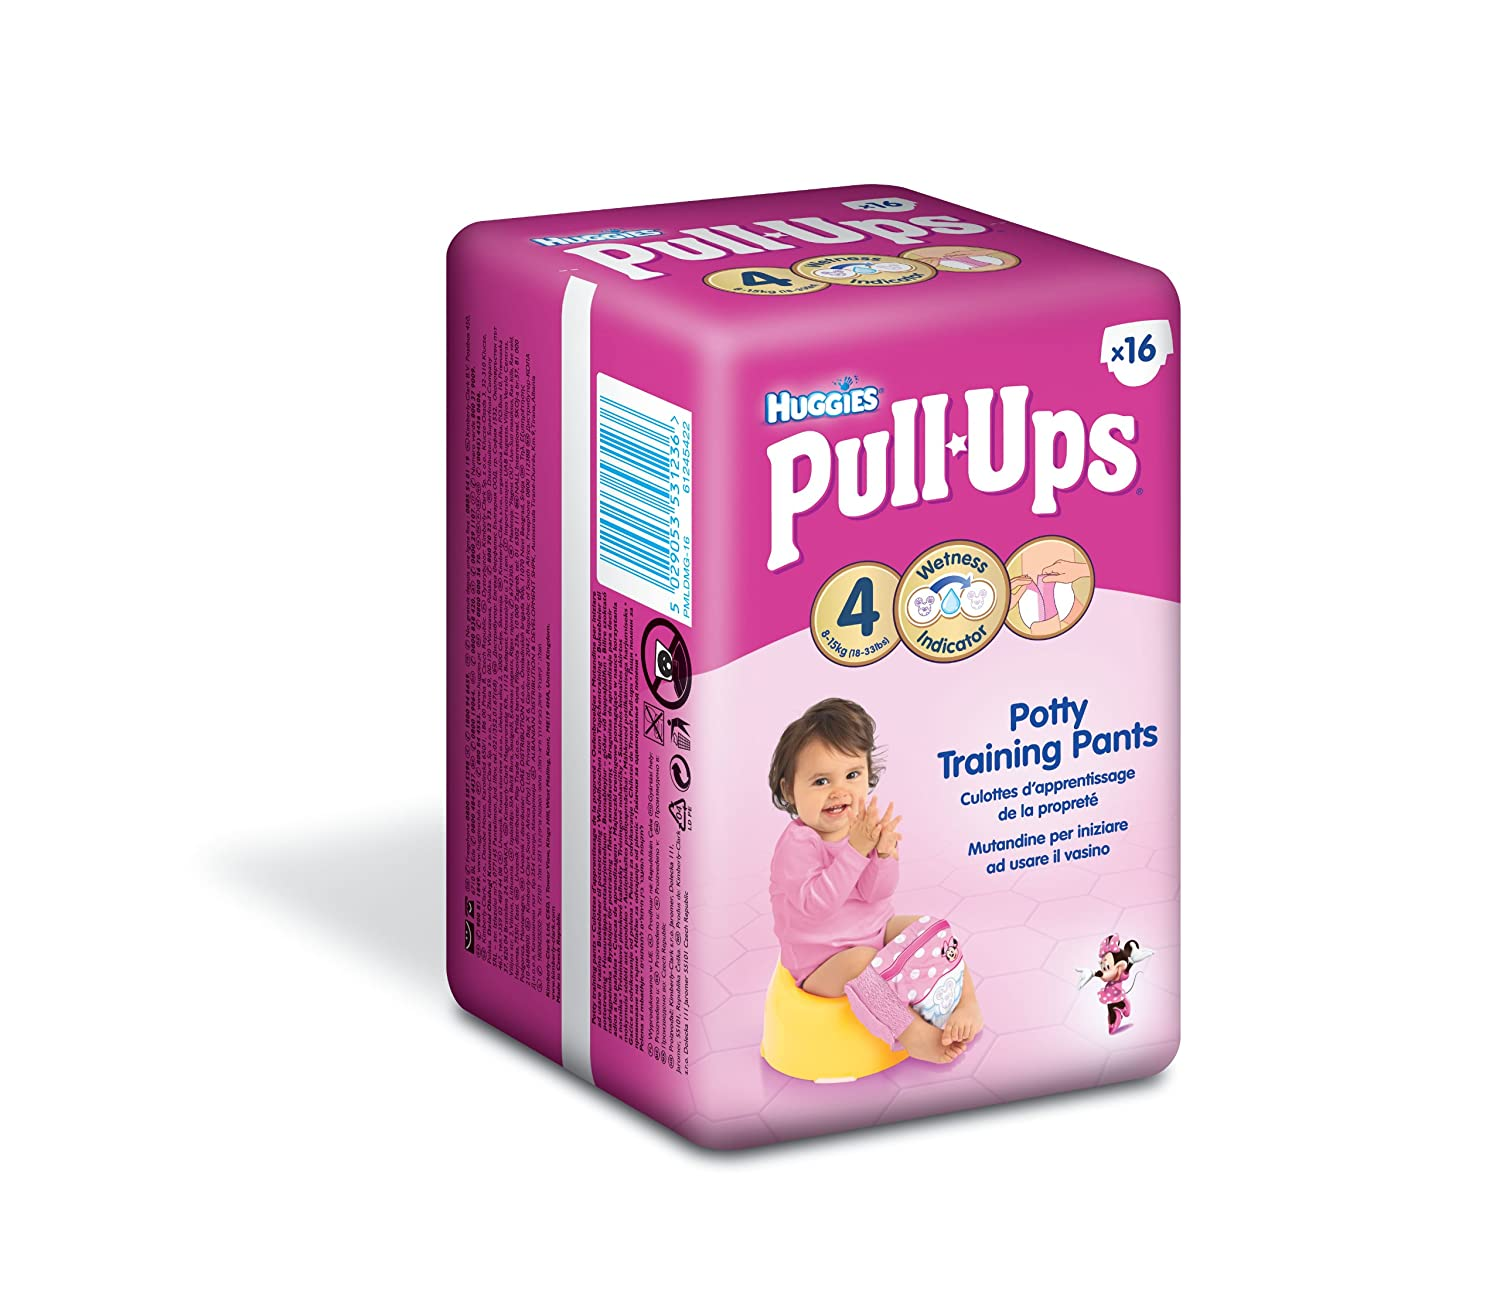 Huggies Pull Ups Potty Training Pants for Girls - Small (8-15 kg), 16 x 6 Packs (96 Pants) Kimberly-Clark 2817571 02817601